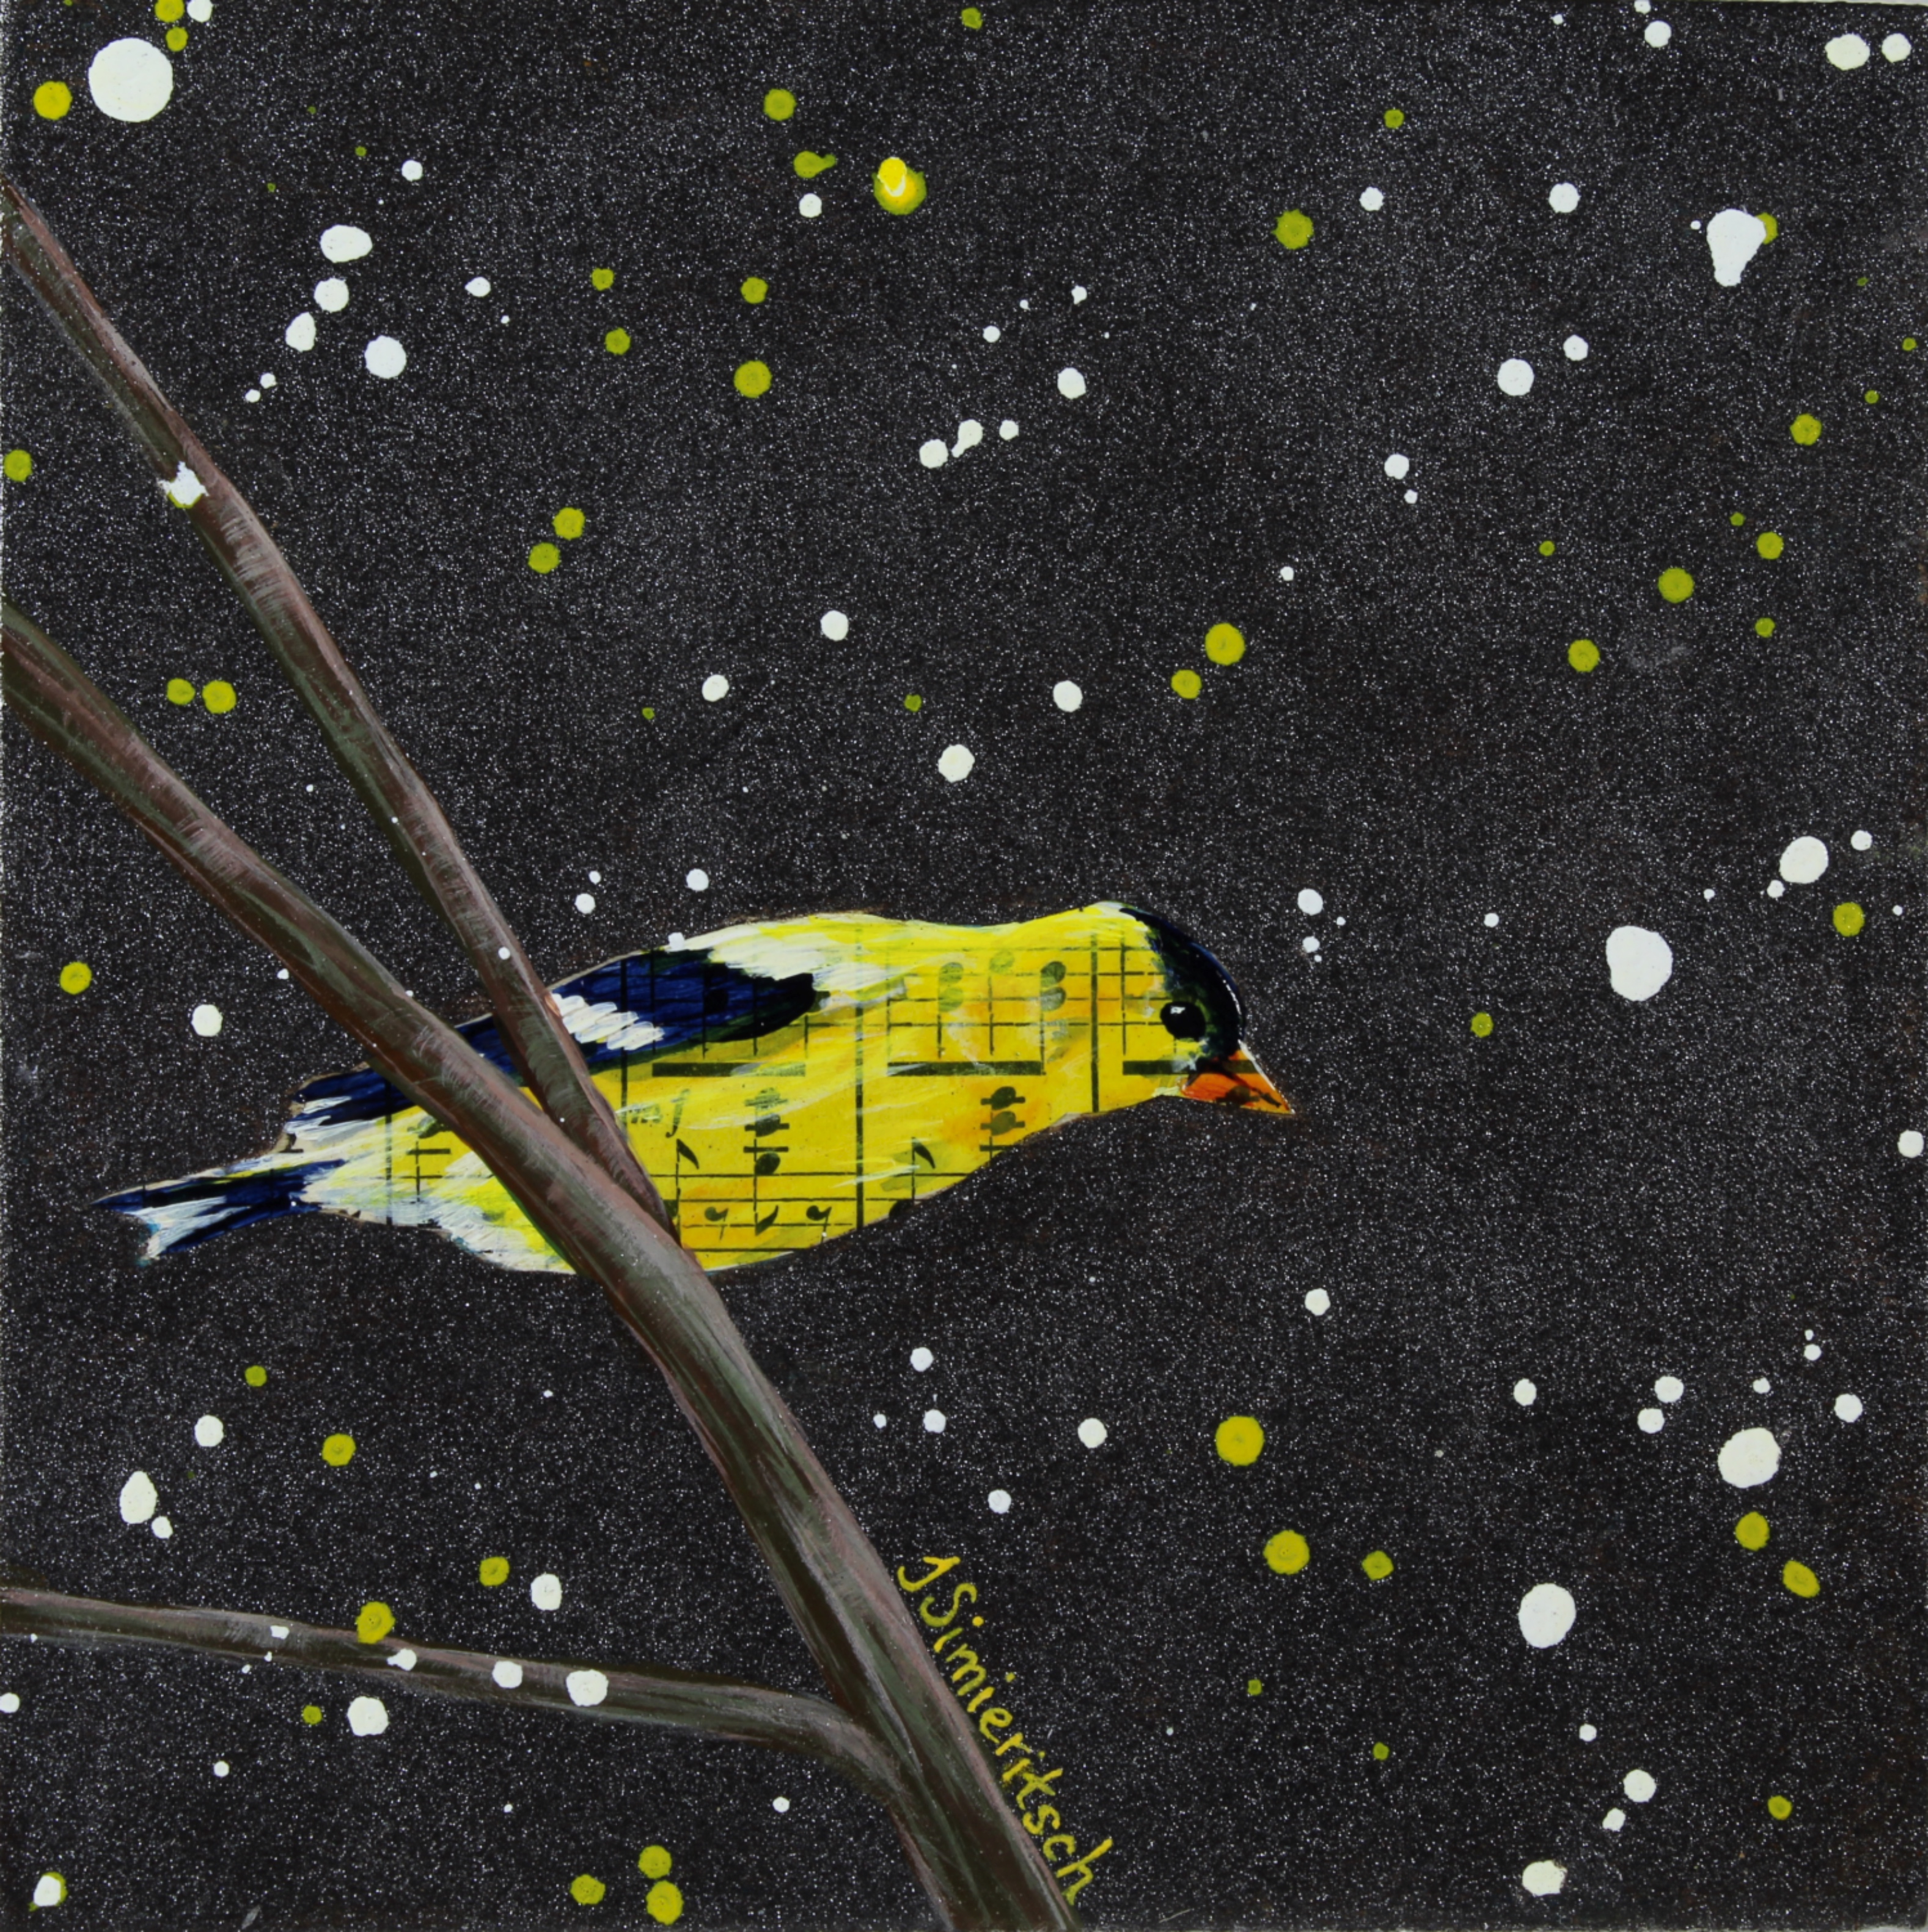 Curious Goldfinch on a Starry Night